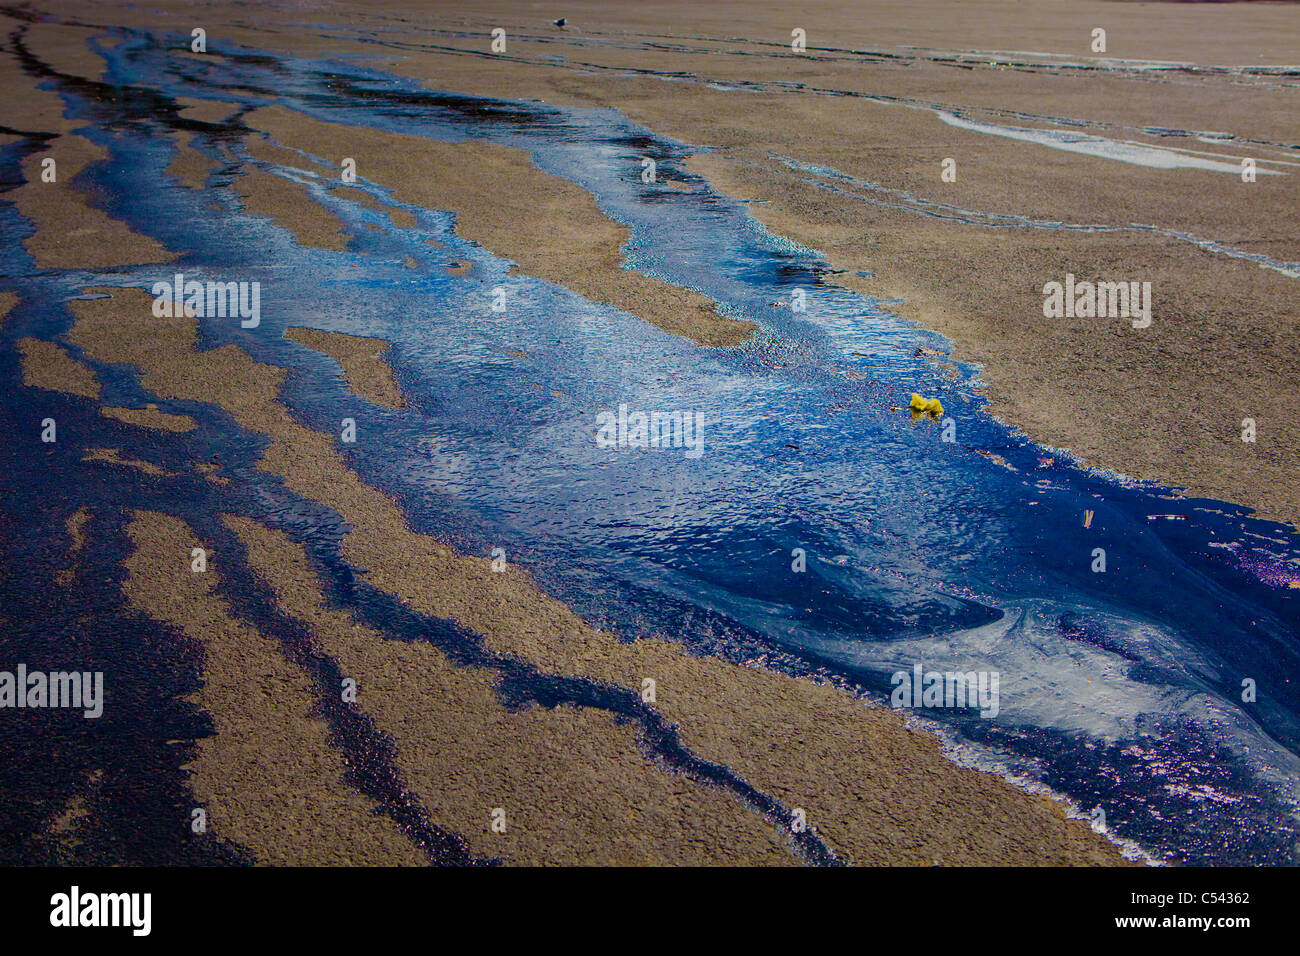 Debris on a river aerial view - Stock Image